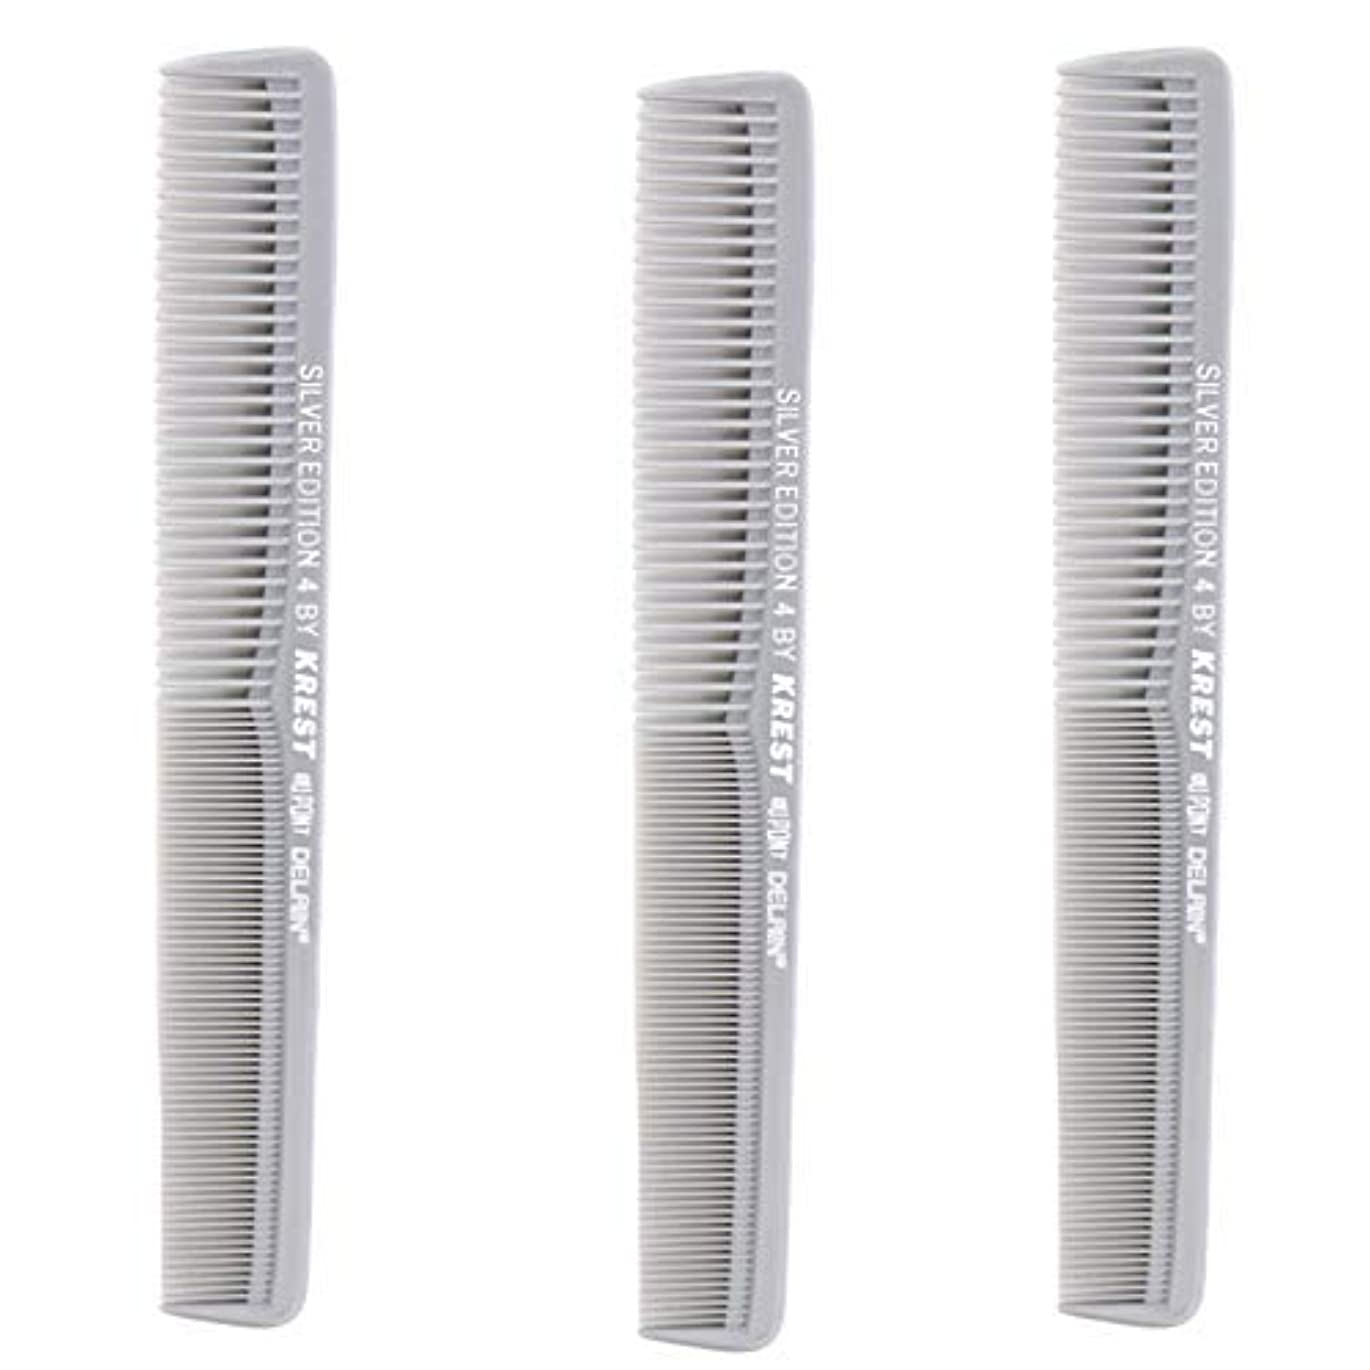 窒息させる暗記する不潔Krest Comb 7 In. Silver Edition Heat Resistant All Purpose Hair Comb Model #4 [並行輸入品]